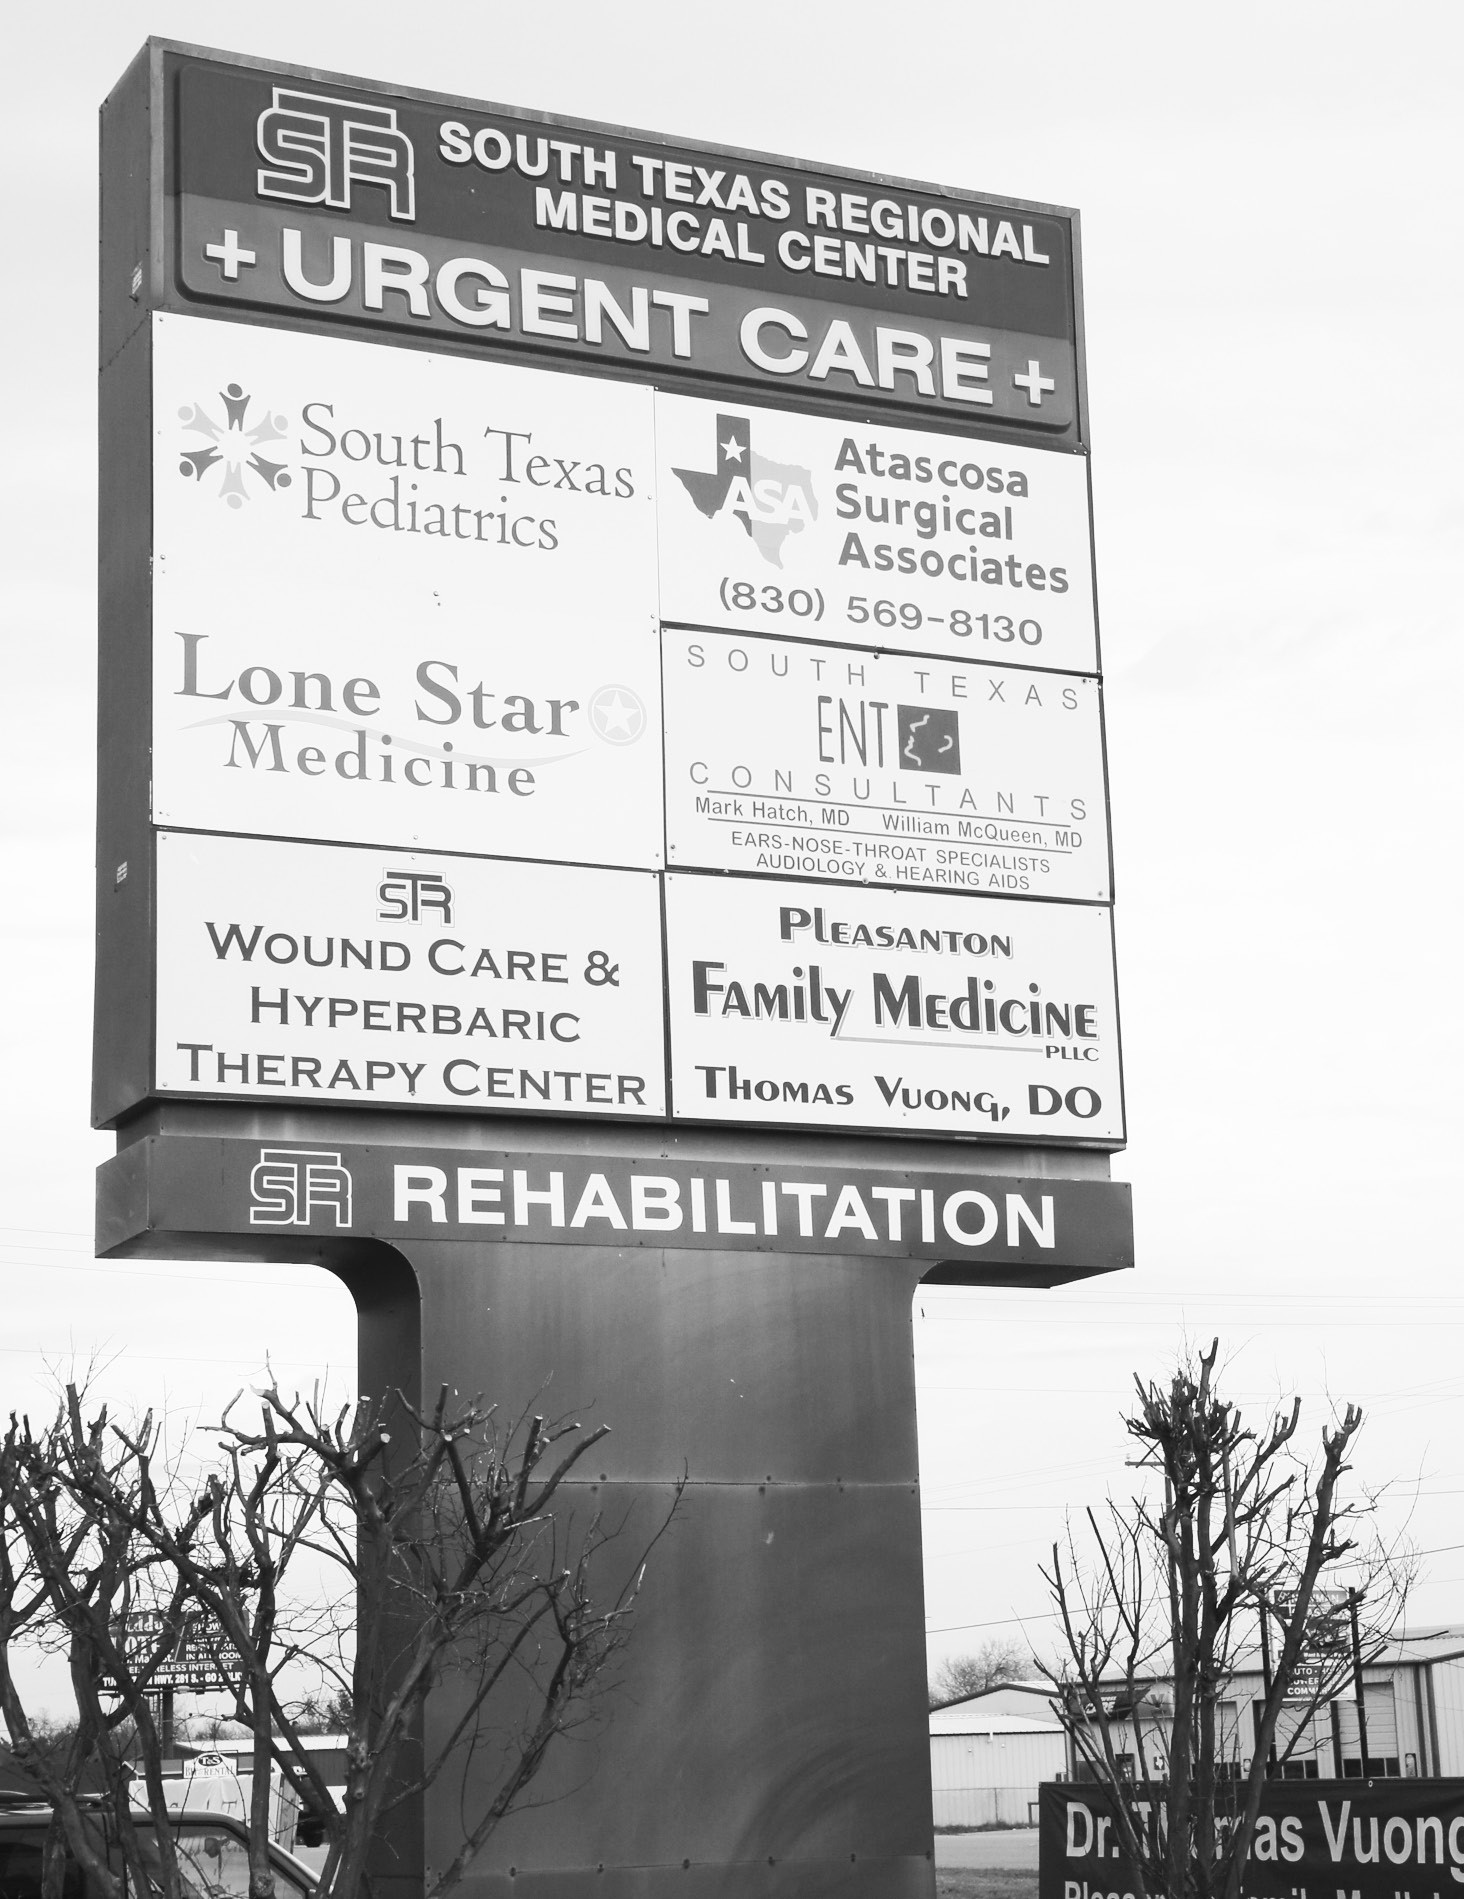 The STRMC Urgent Care facility is located at 1240 W. Oaklawn, Suite 121